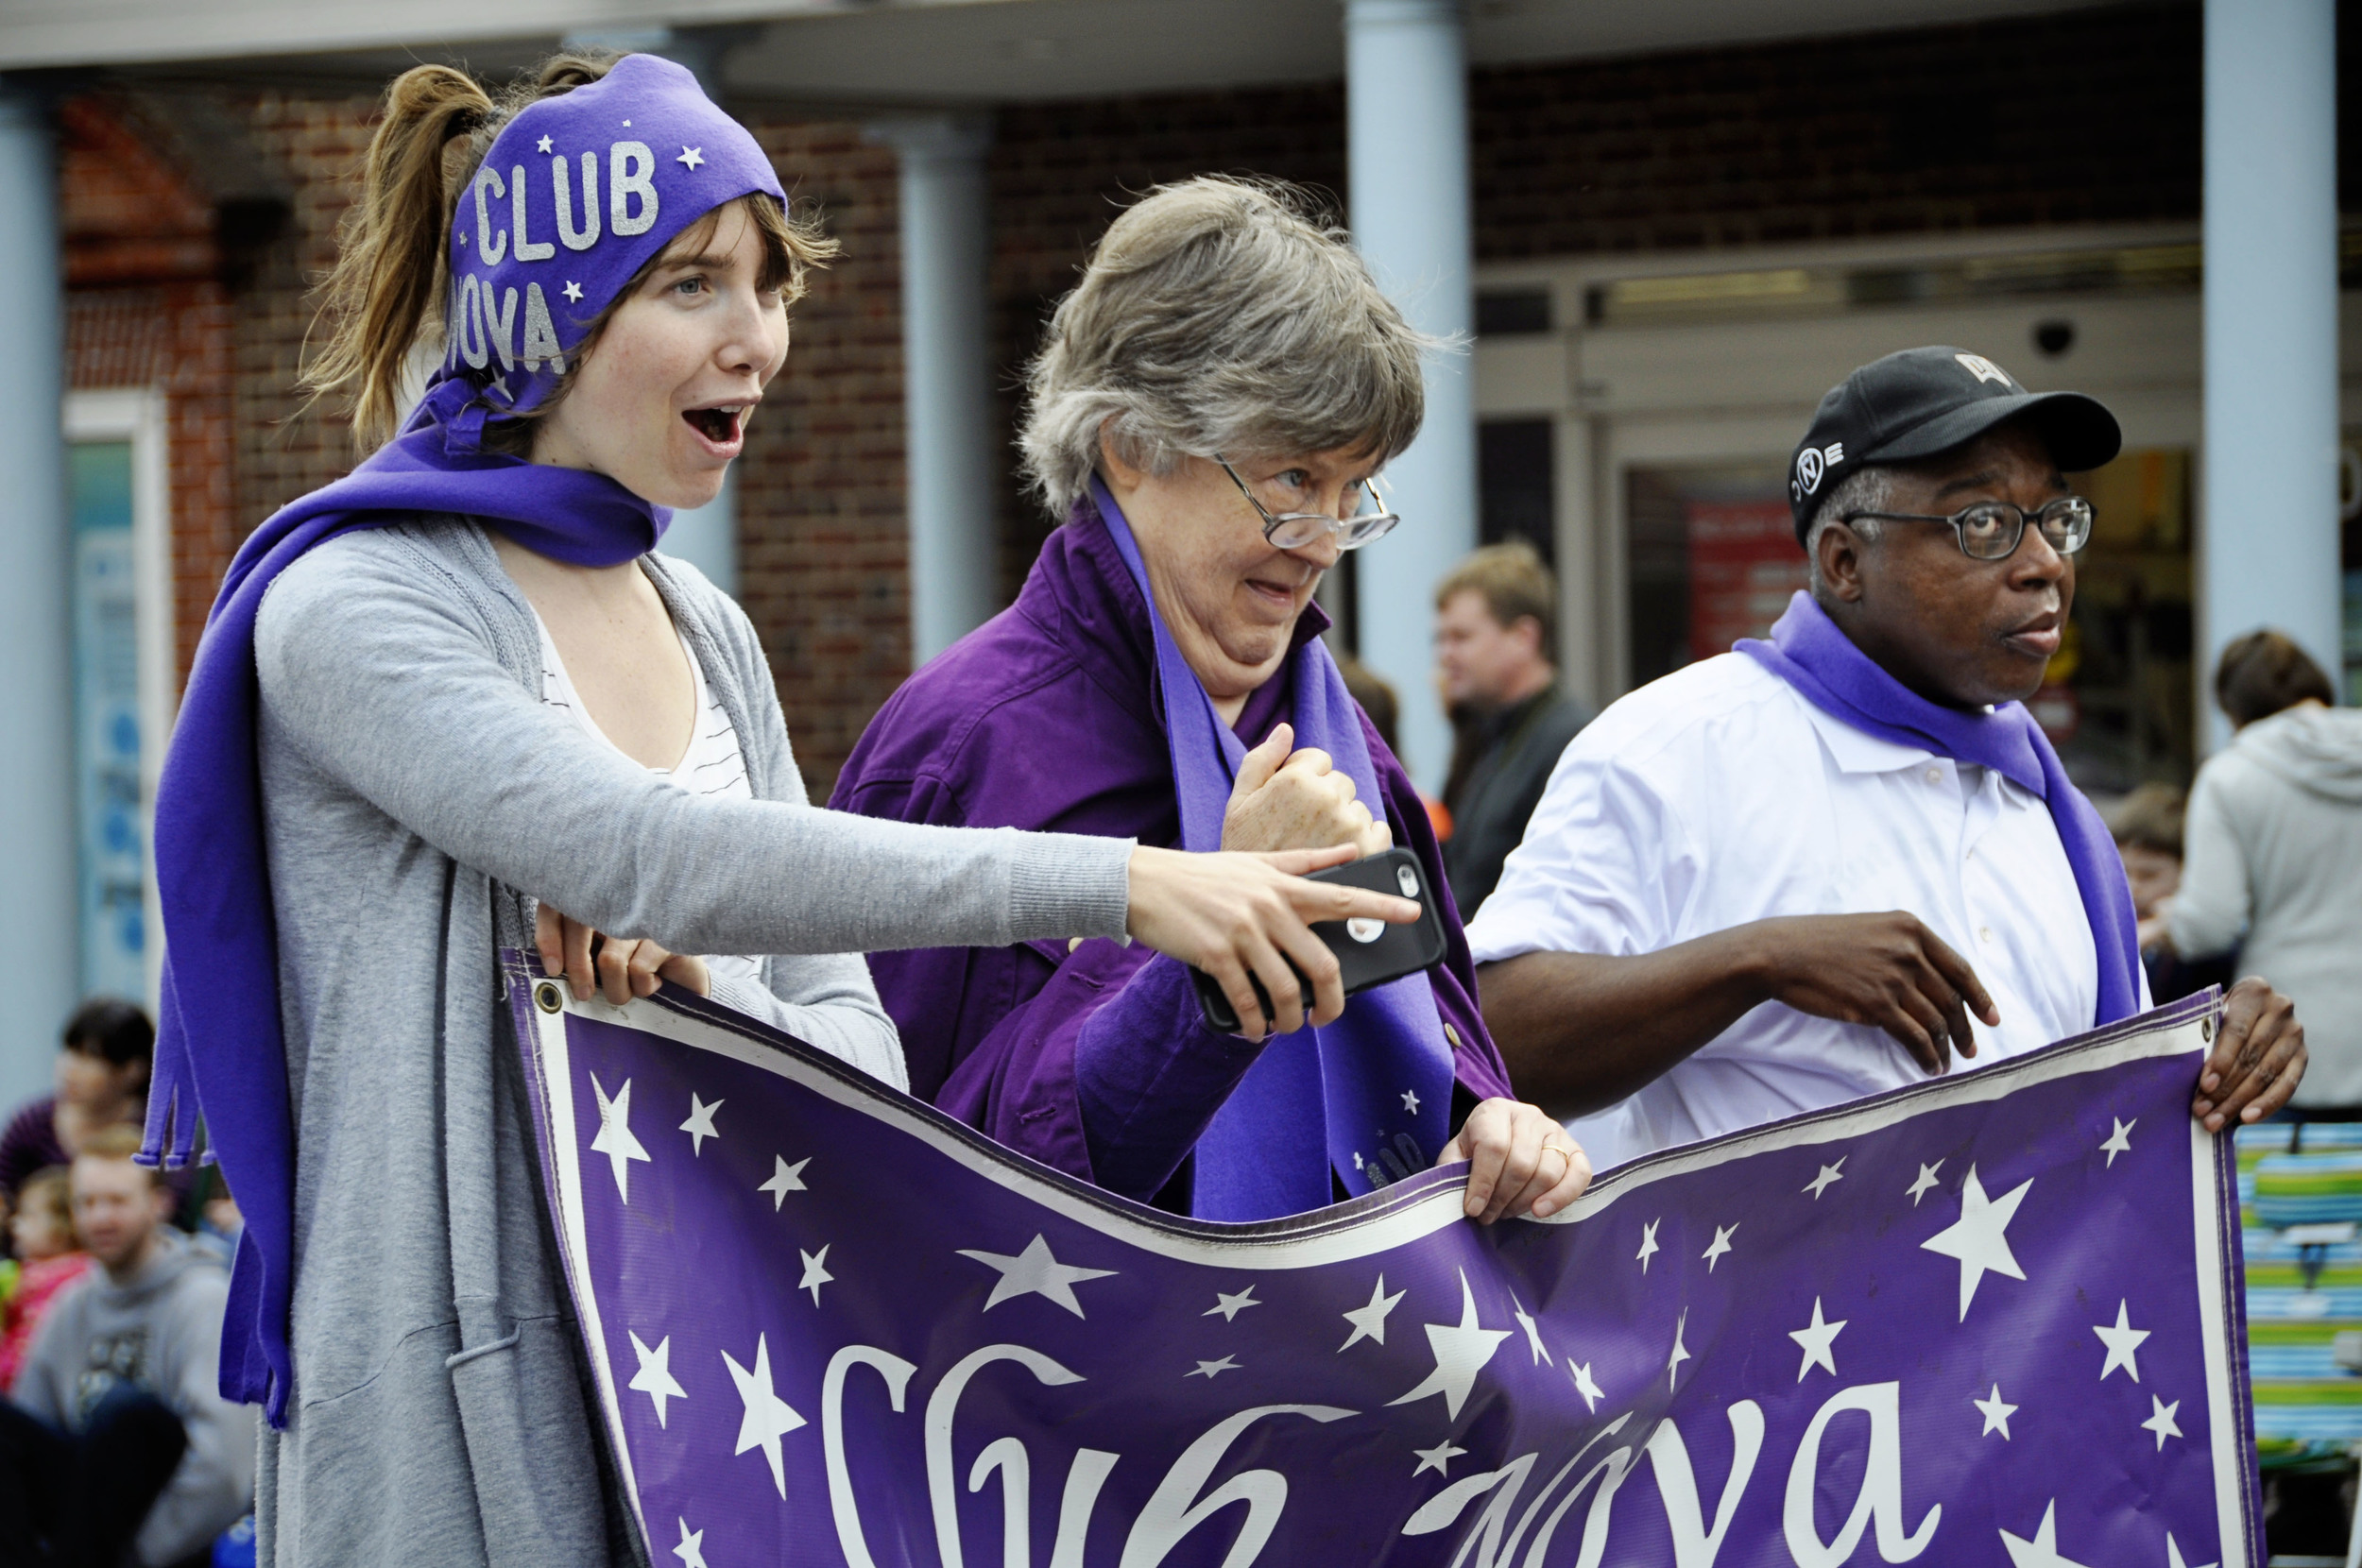 Chapel Hill-Carrboro parade -12.jpg